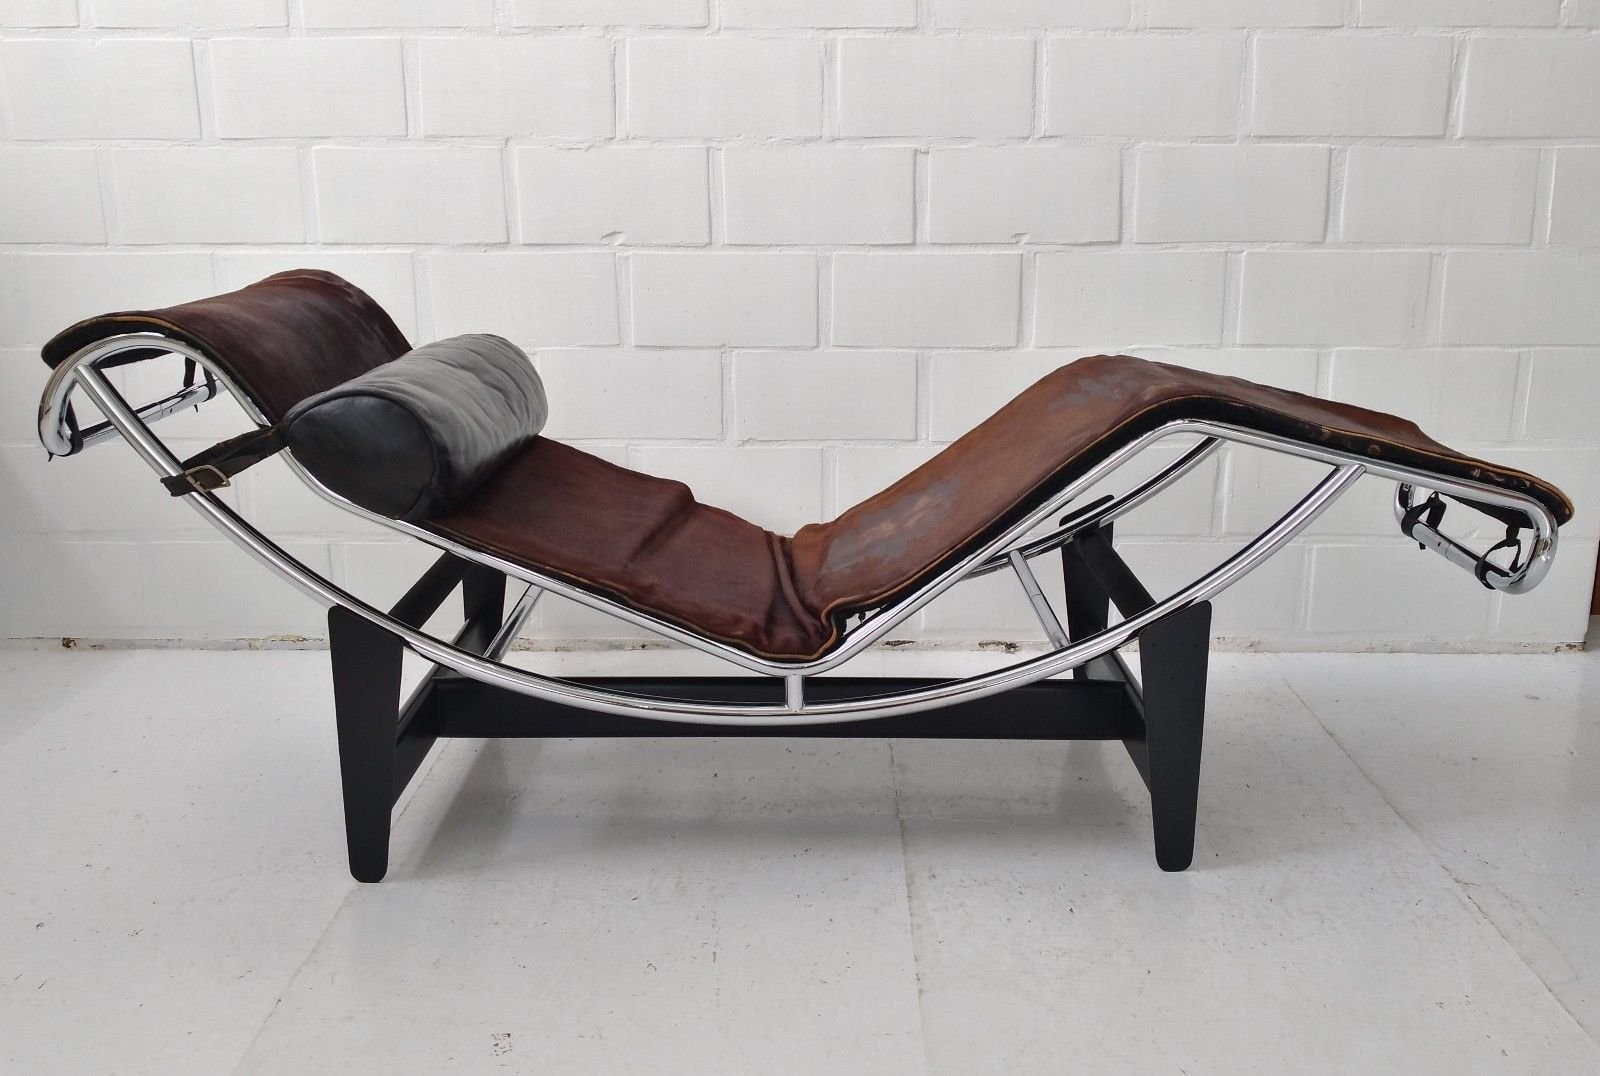 Lc4 chaise longue by le corbusier charlotte perriand for Chaise longue for sale